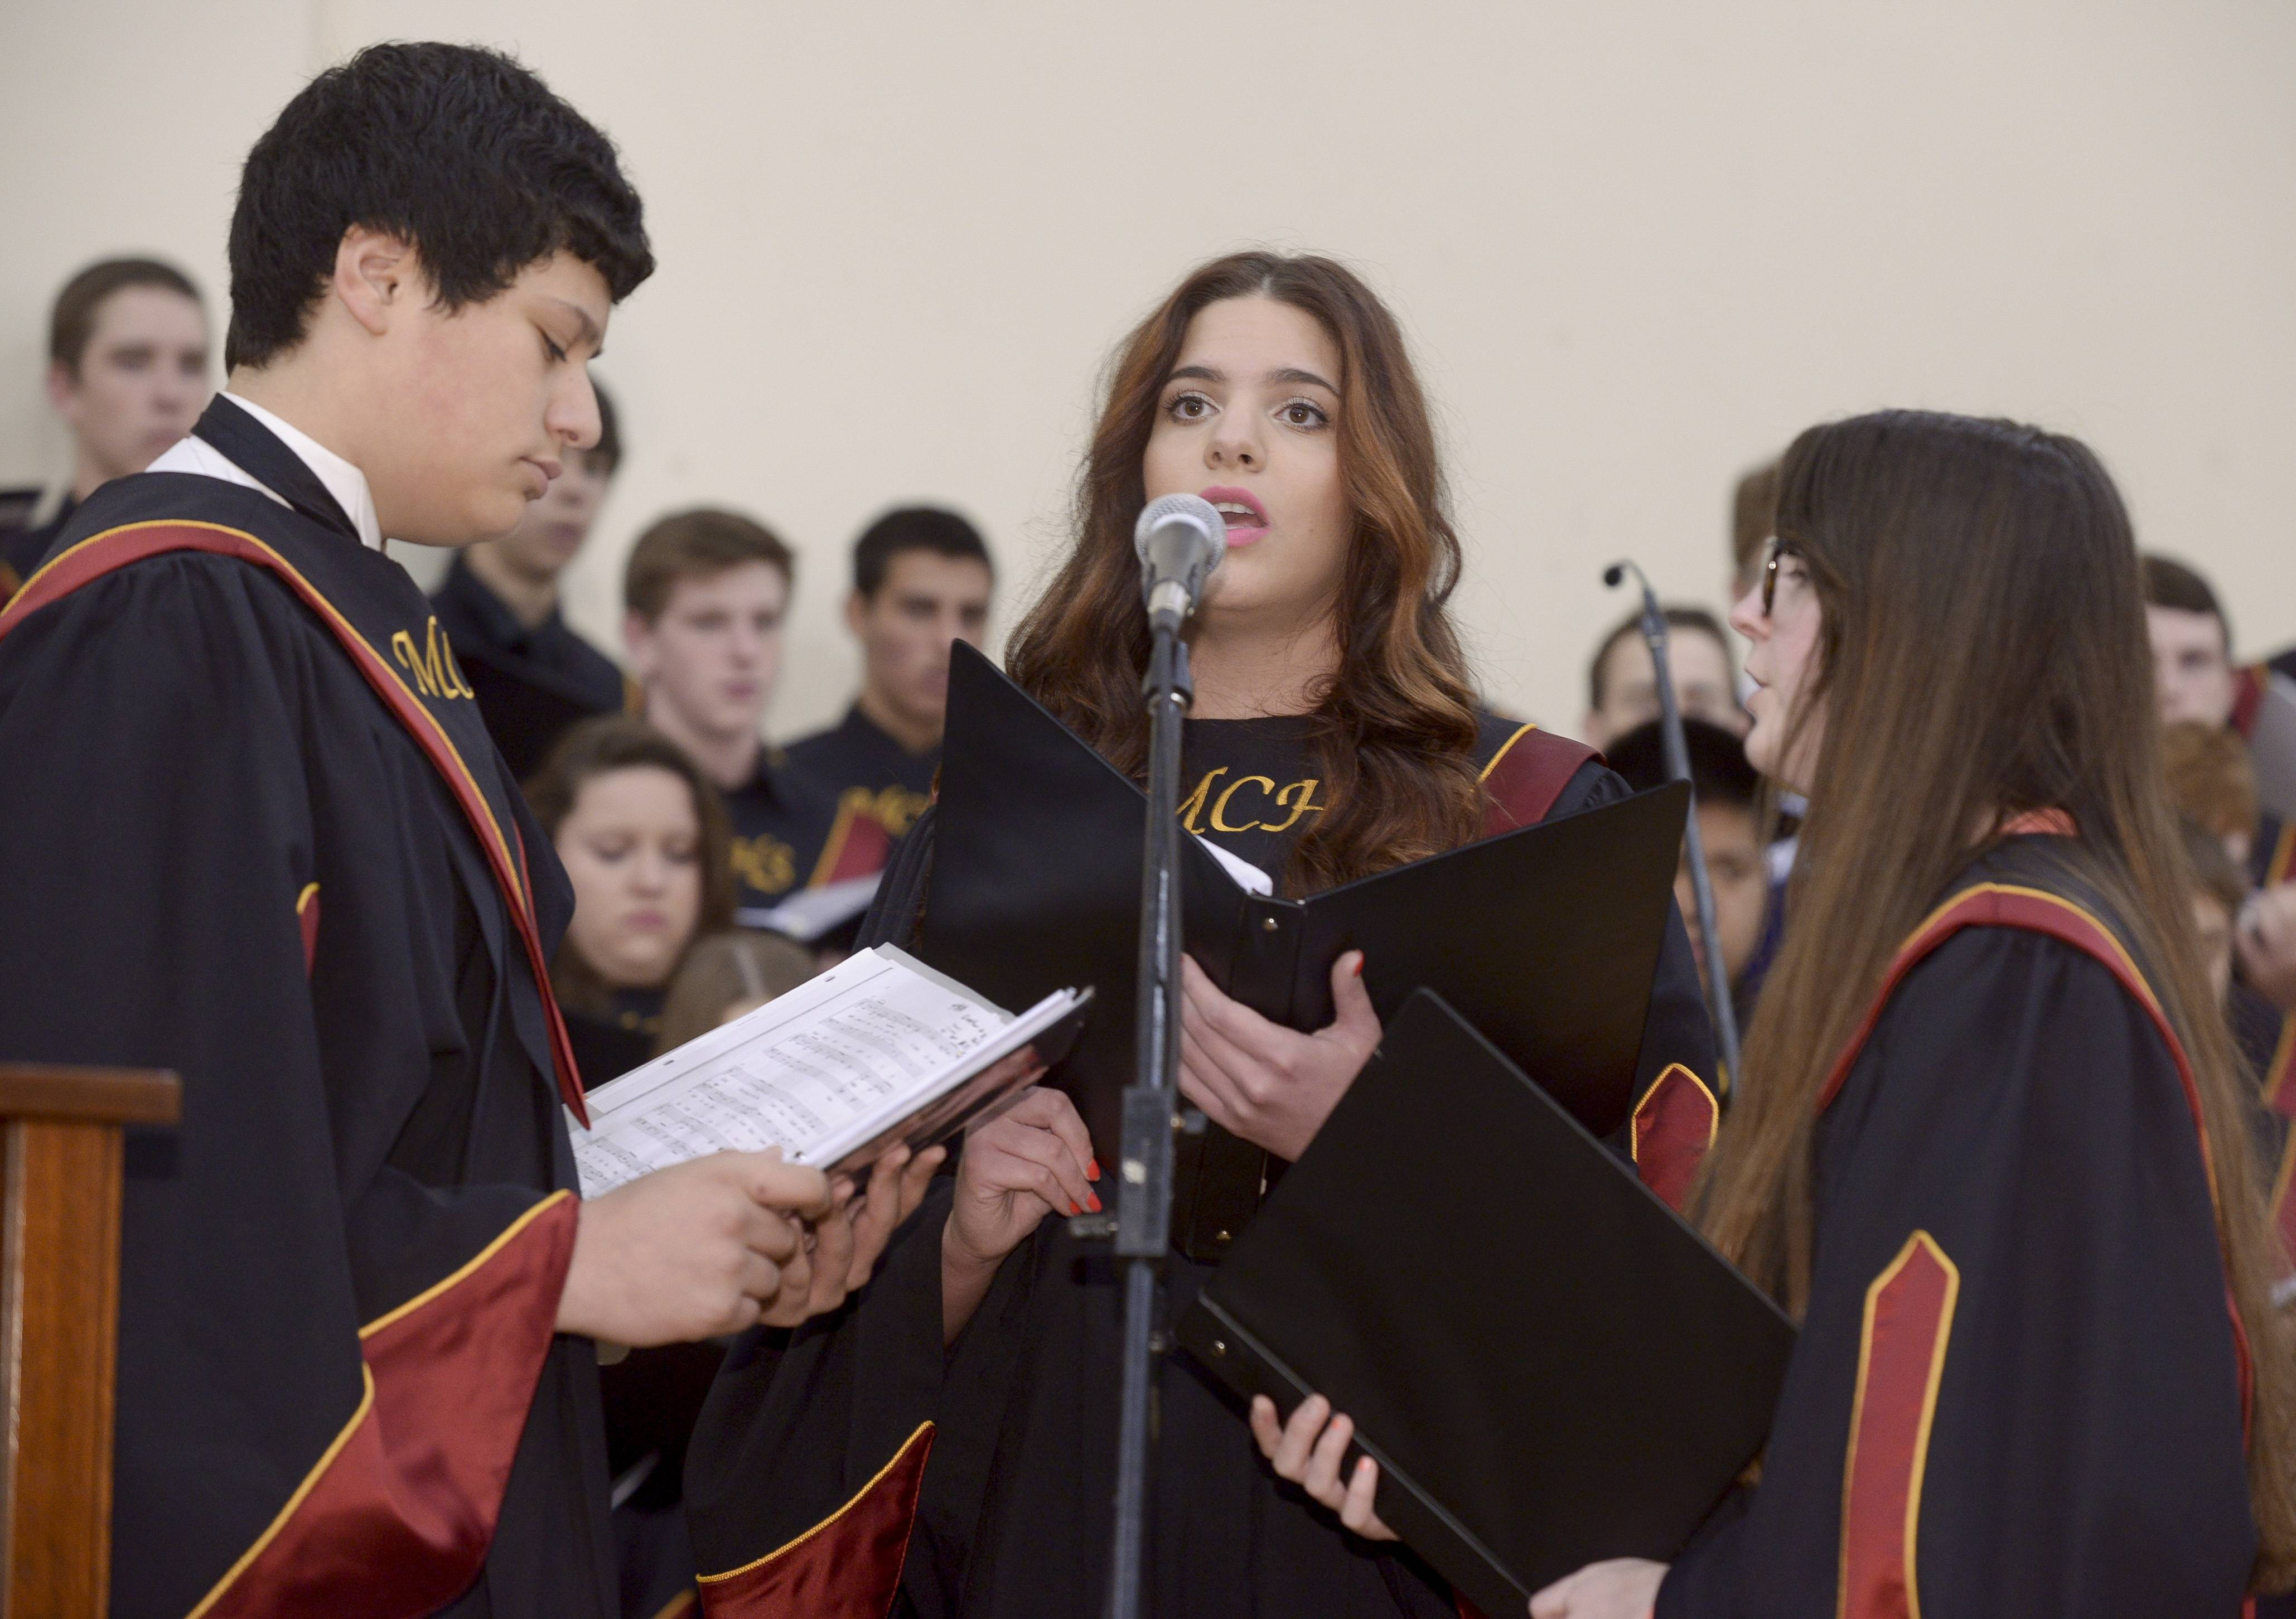 Montini Catholic High School held its graduation Sunday, May 18 at Montini in Lombard.